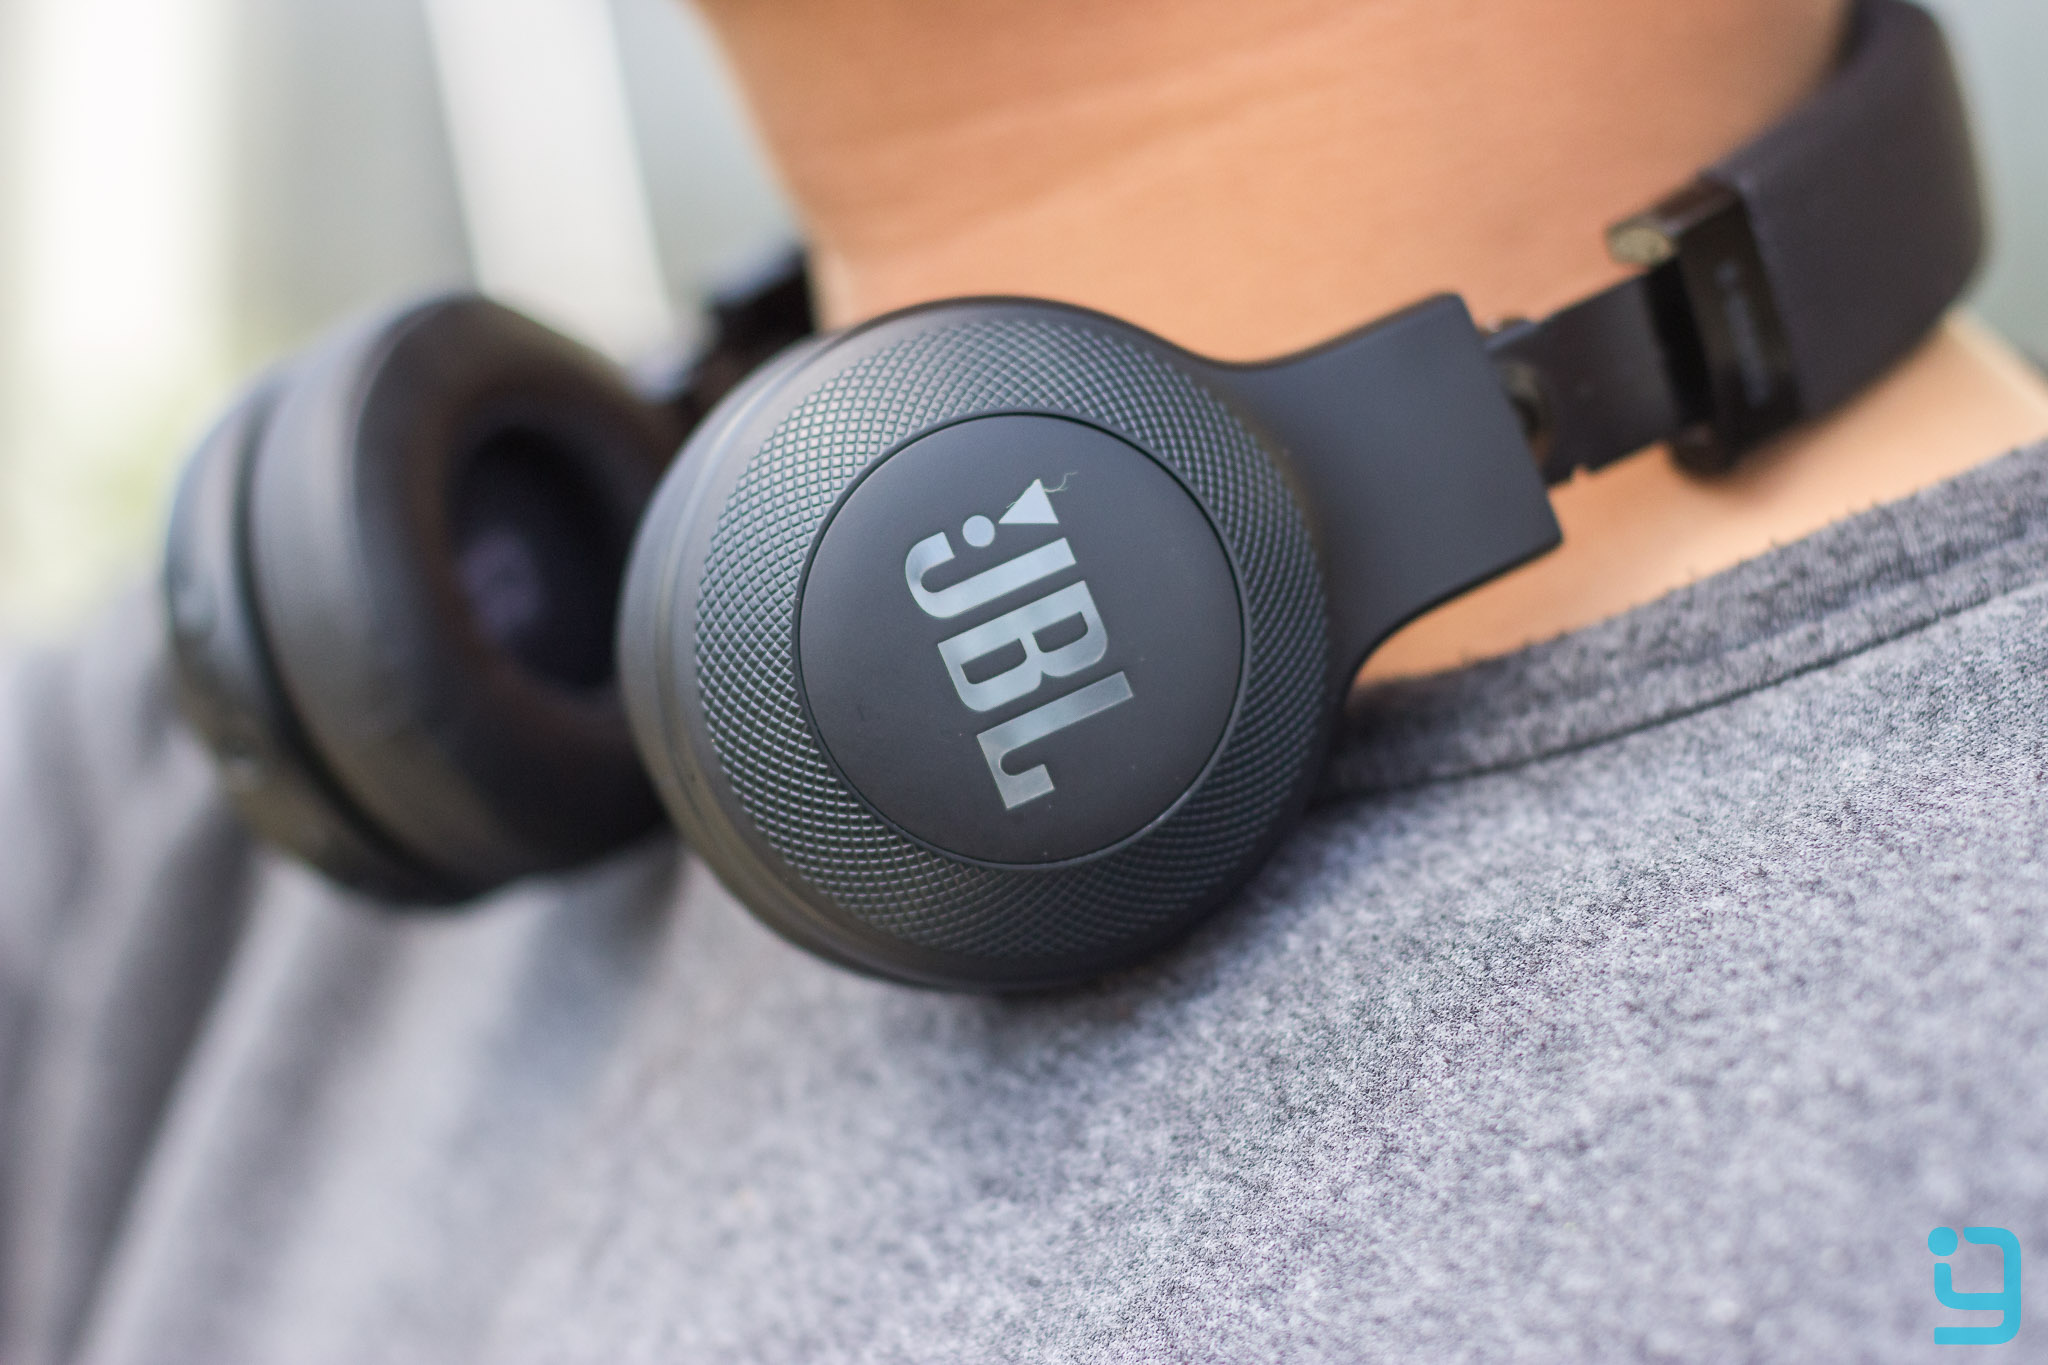 Jbl Headphones E45bt And E55bt Launched In Nepal Gadgetbyte Nepal